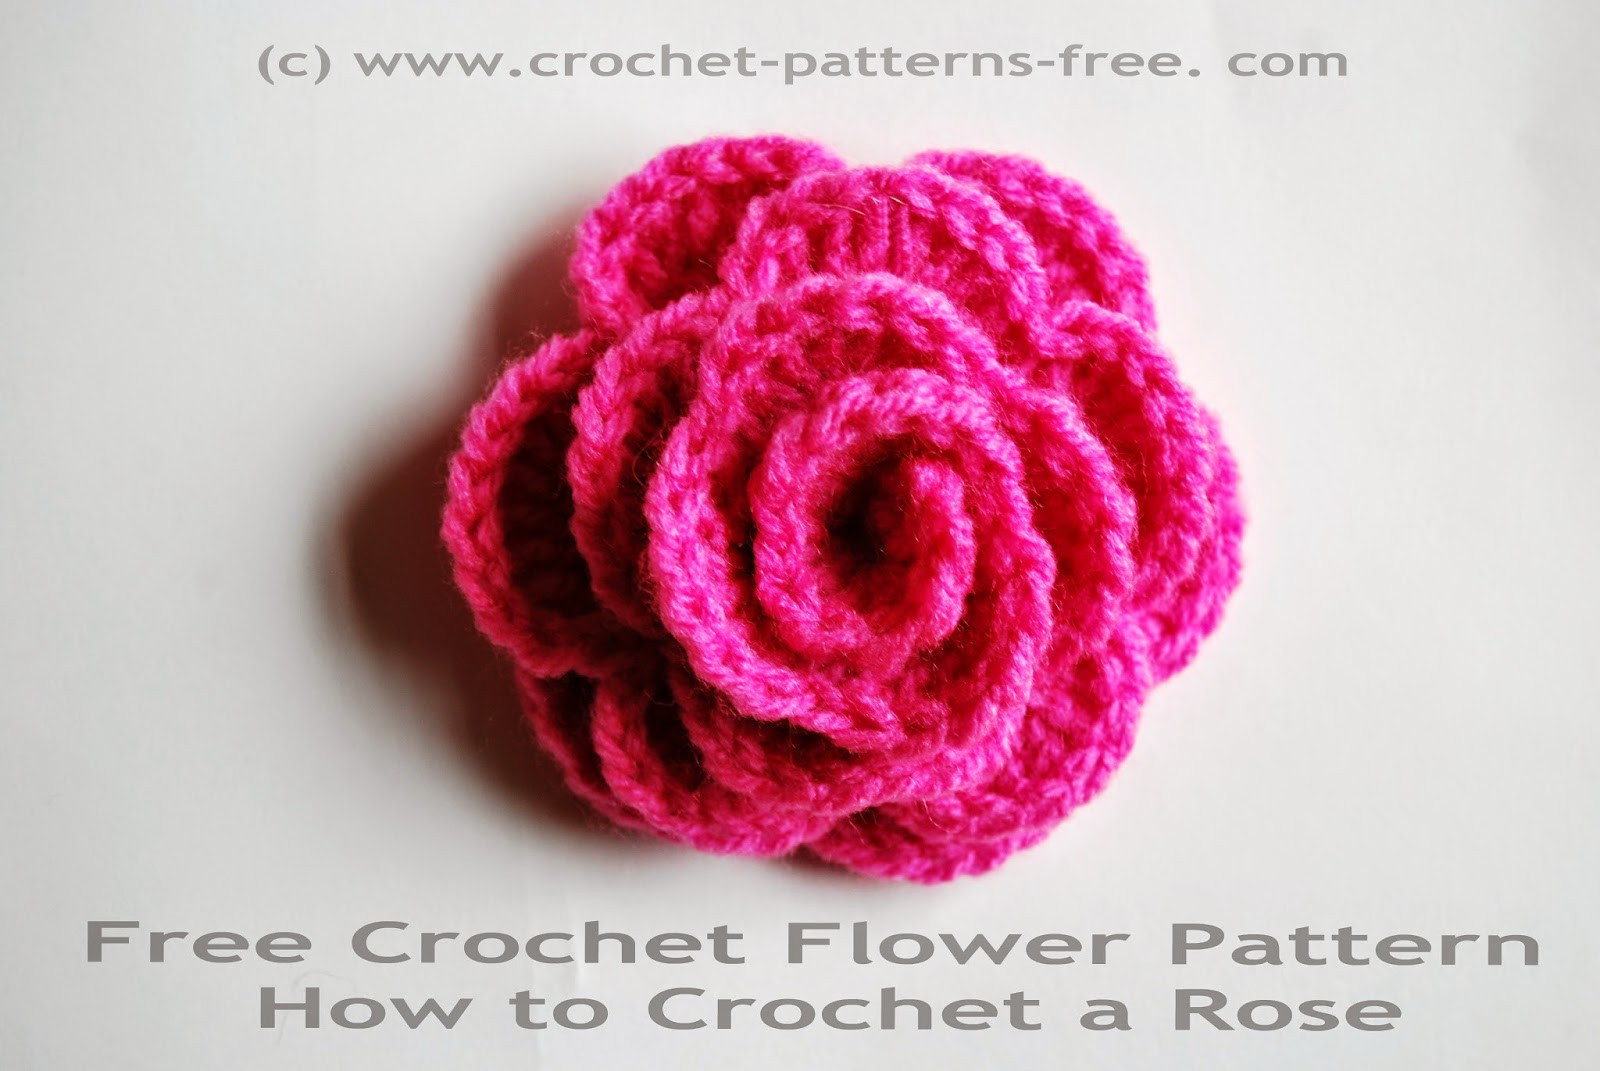 Free Crochet Rose Pattern Best Of Free Crochet Flower Pattern How to Crochet A Rose Of Attractive 49 Pics Free Crochet Rose Pattern